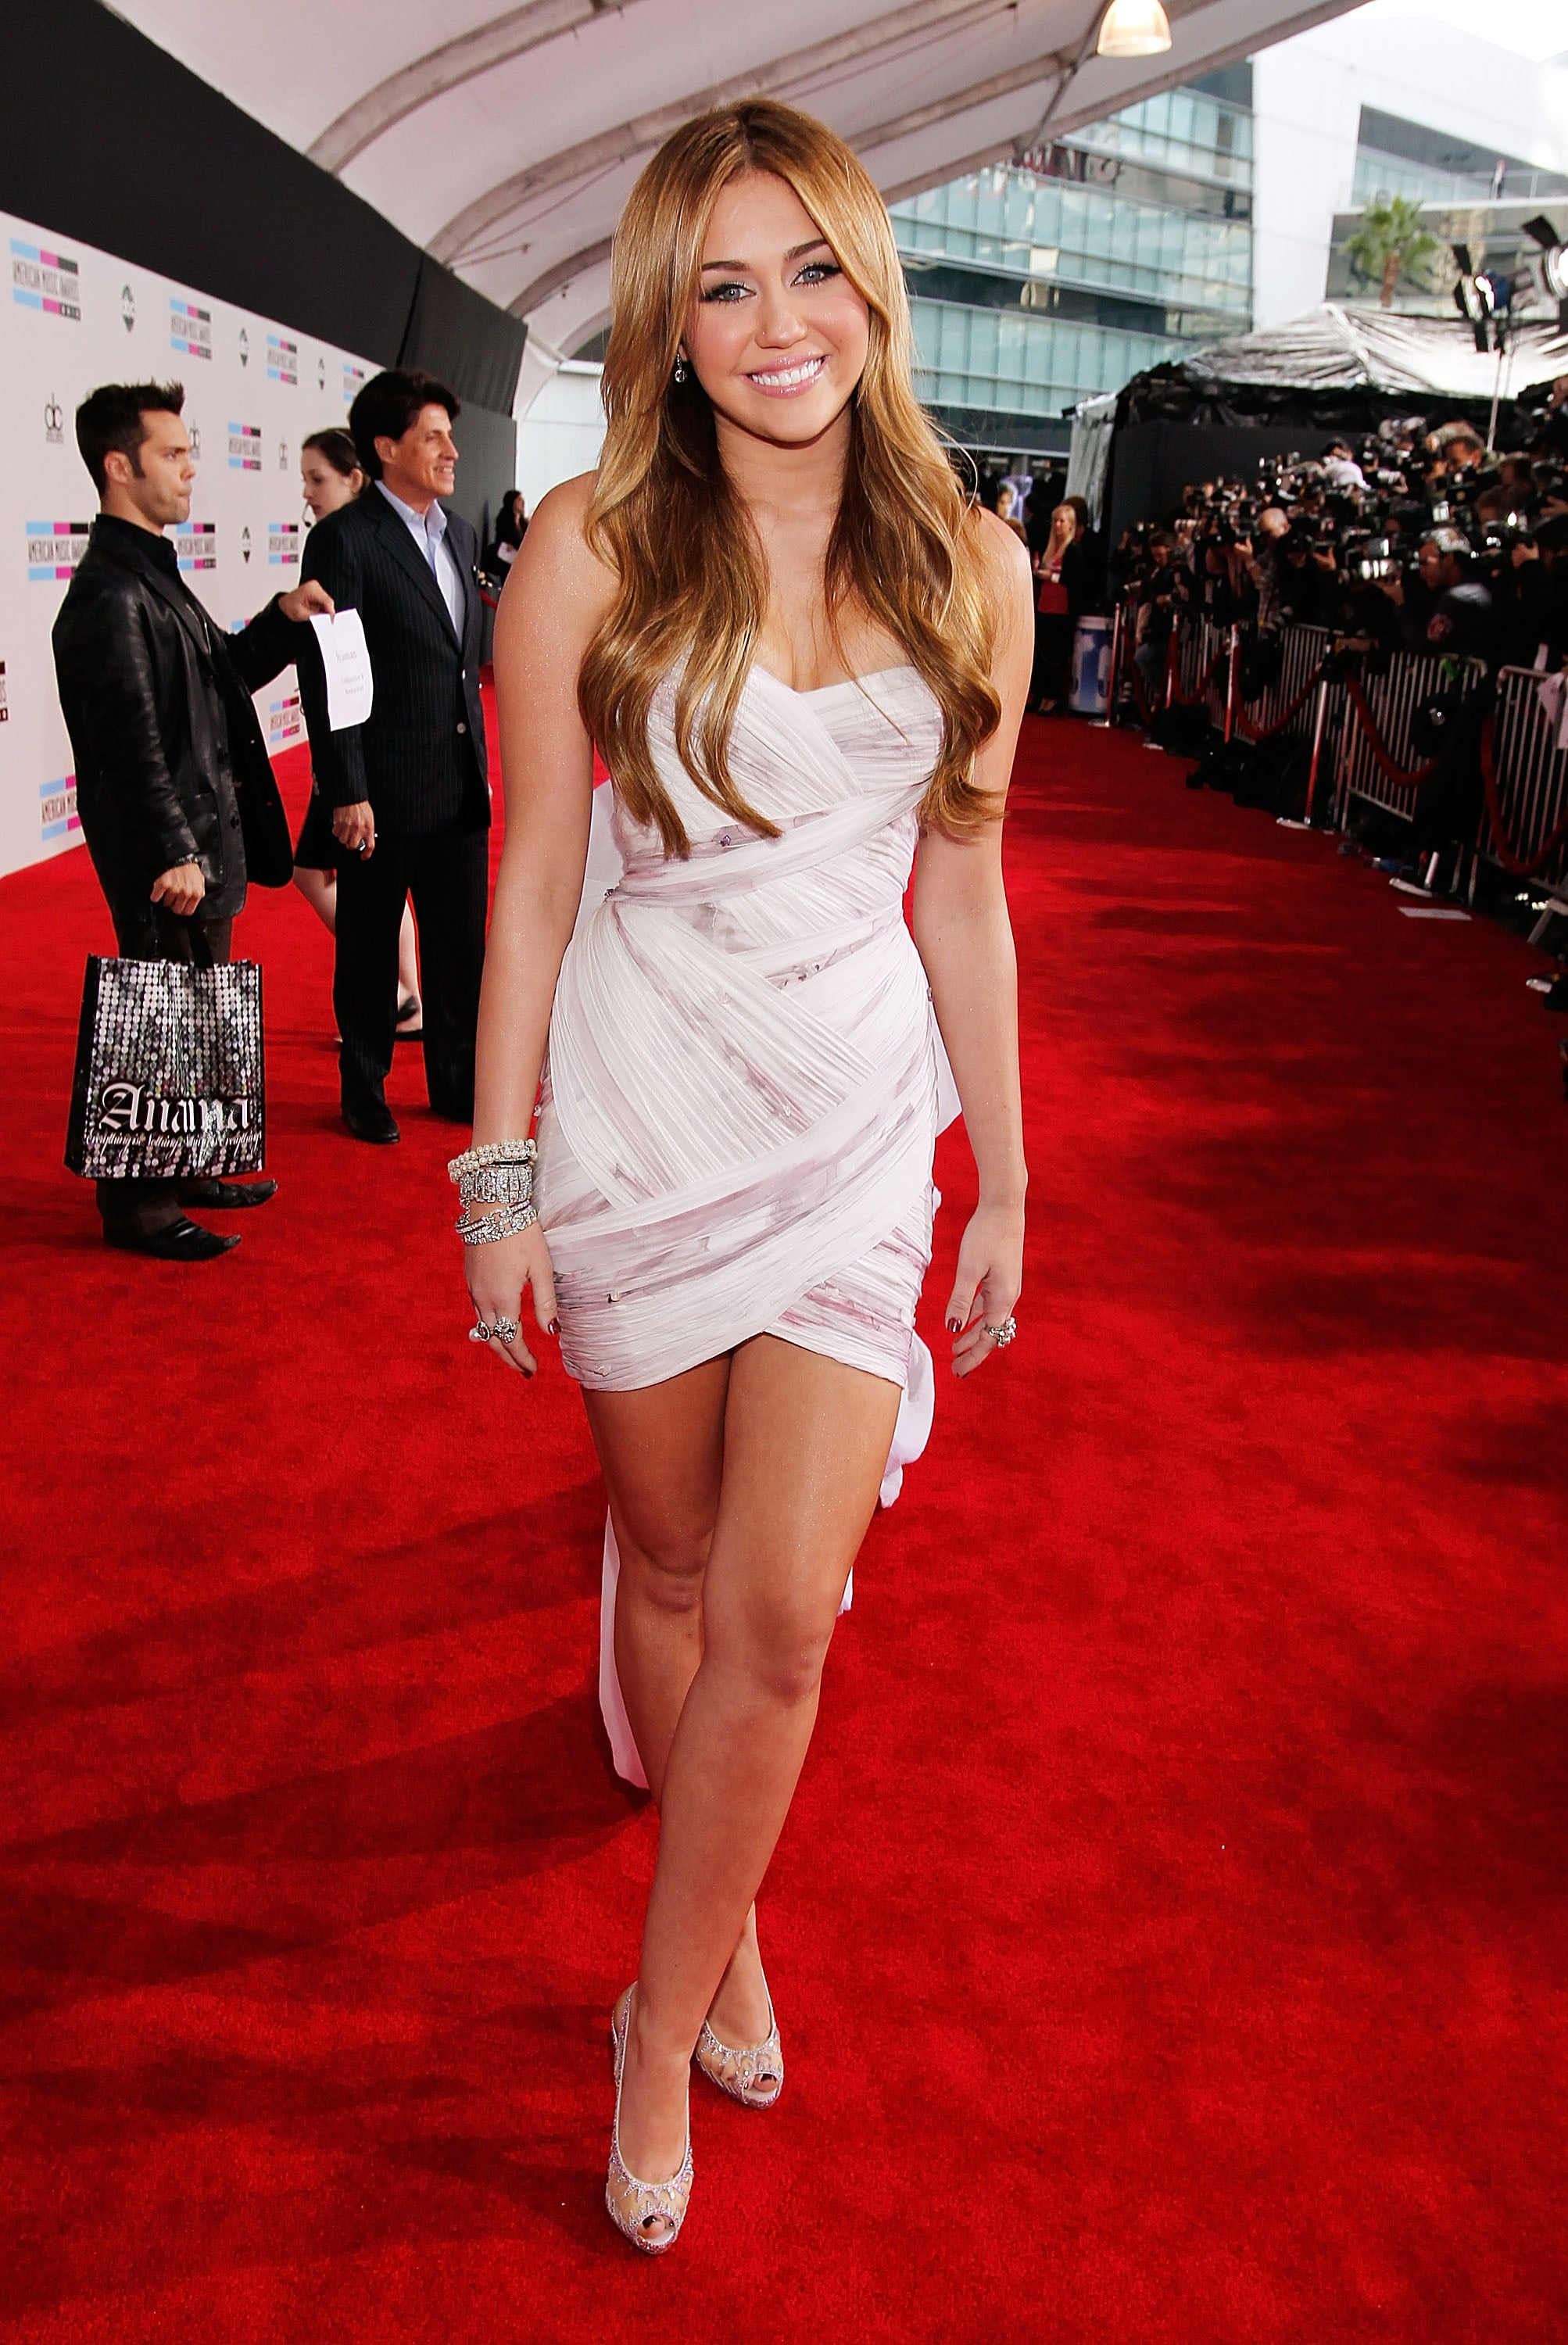 Miley Cyrus in Short White Dress at the 2010 American Music Awards ...